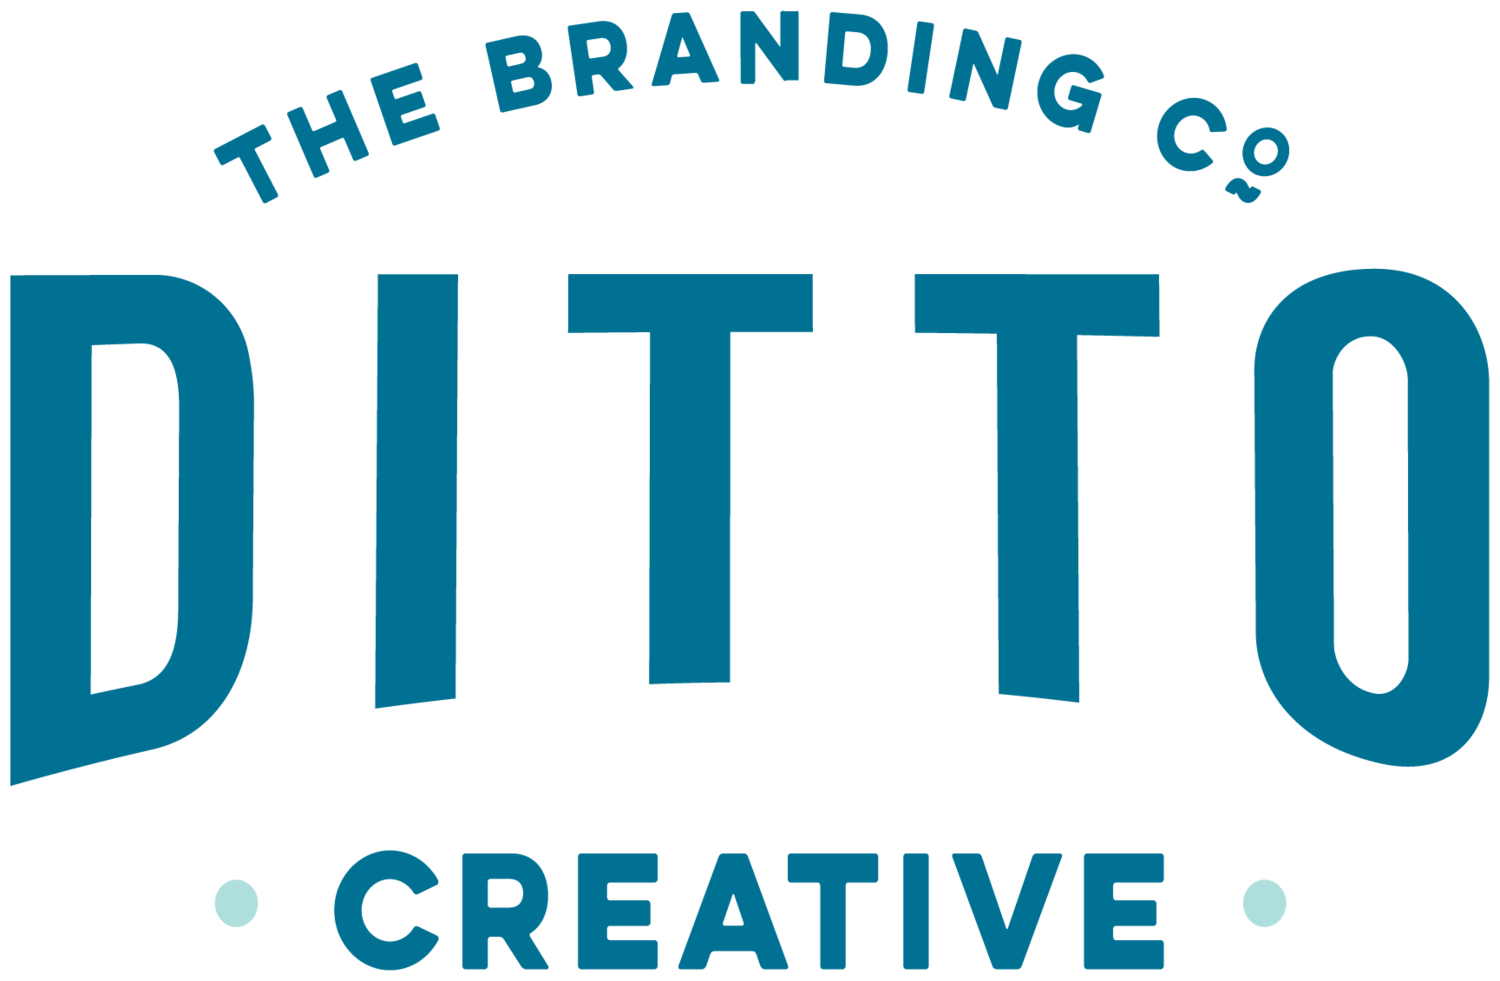 Ditto Creative | boutique branding agency Kent | Specialising in branding for small businesses